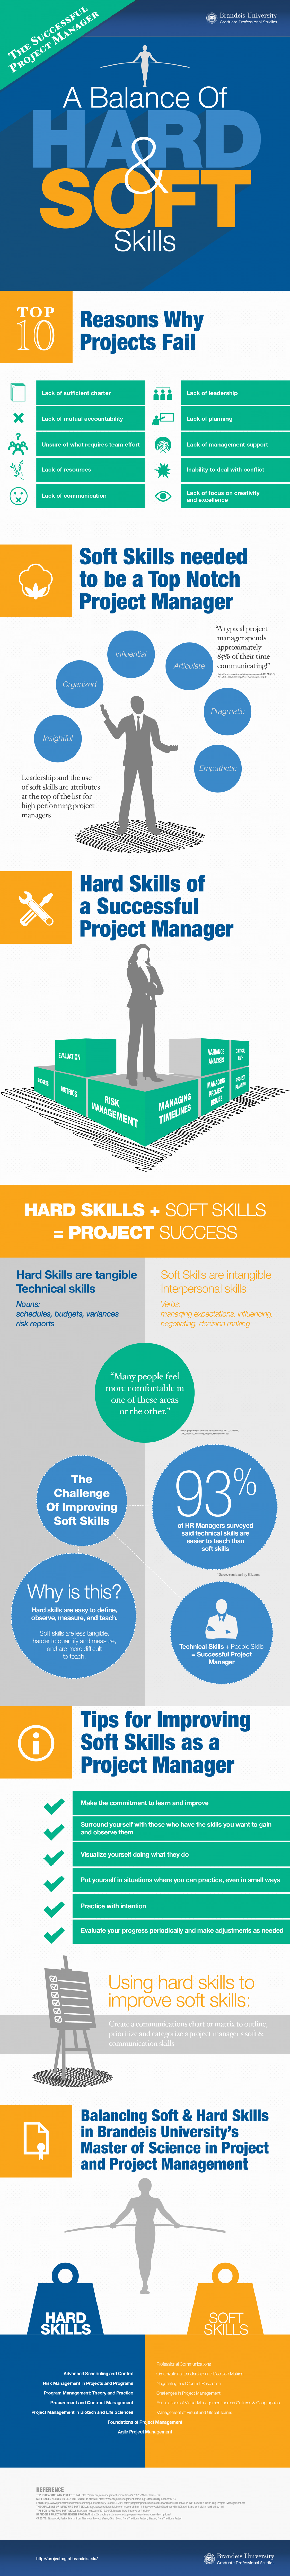 The Successful Project Manager: A Balance of Hard & Soft Skills Infographic